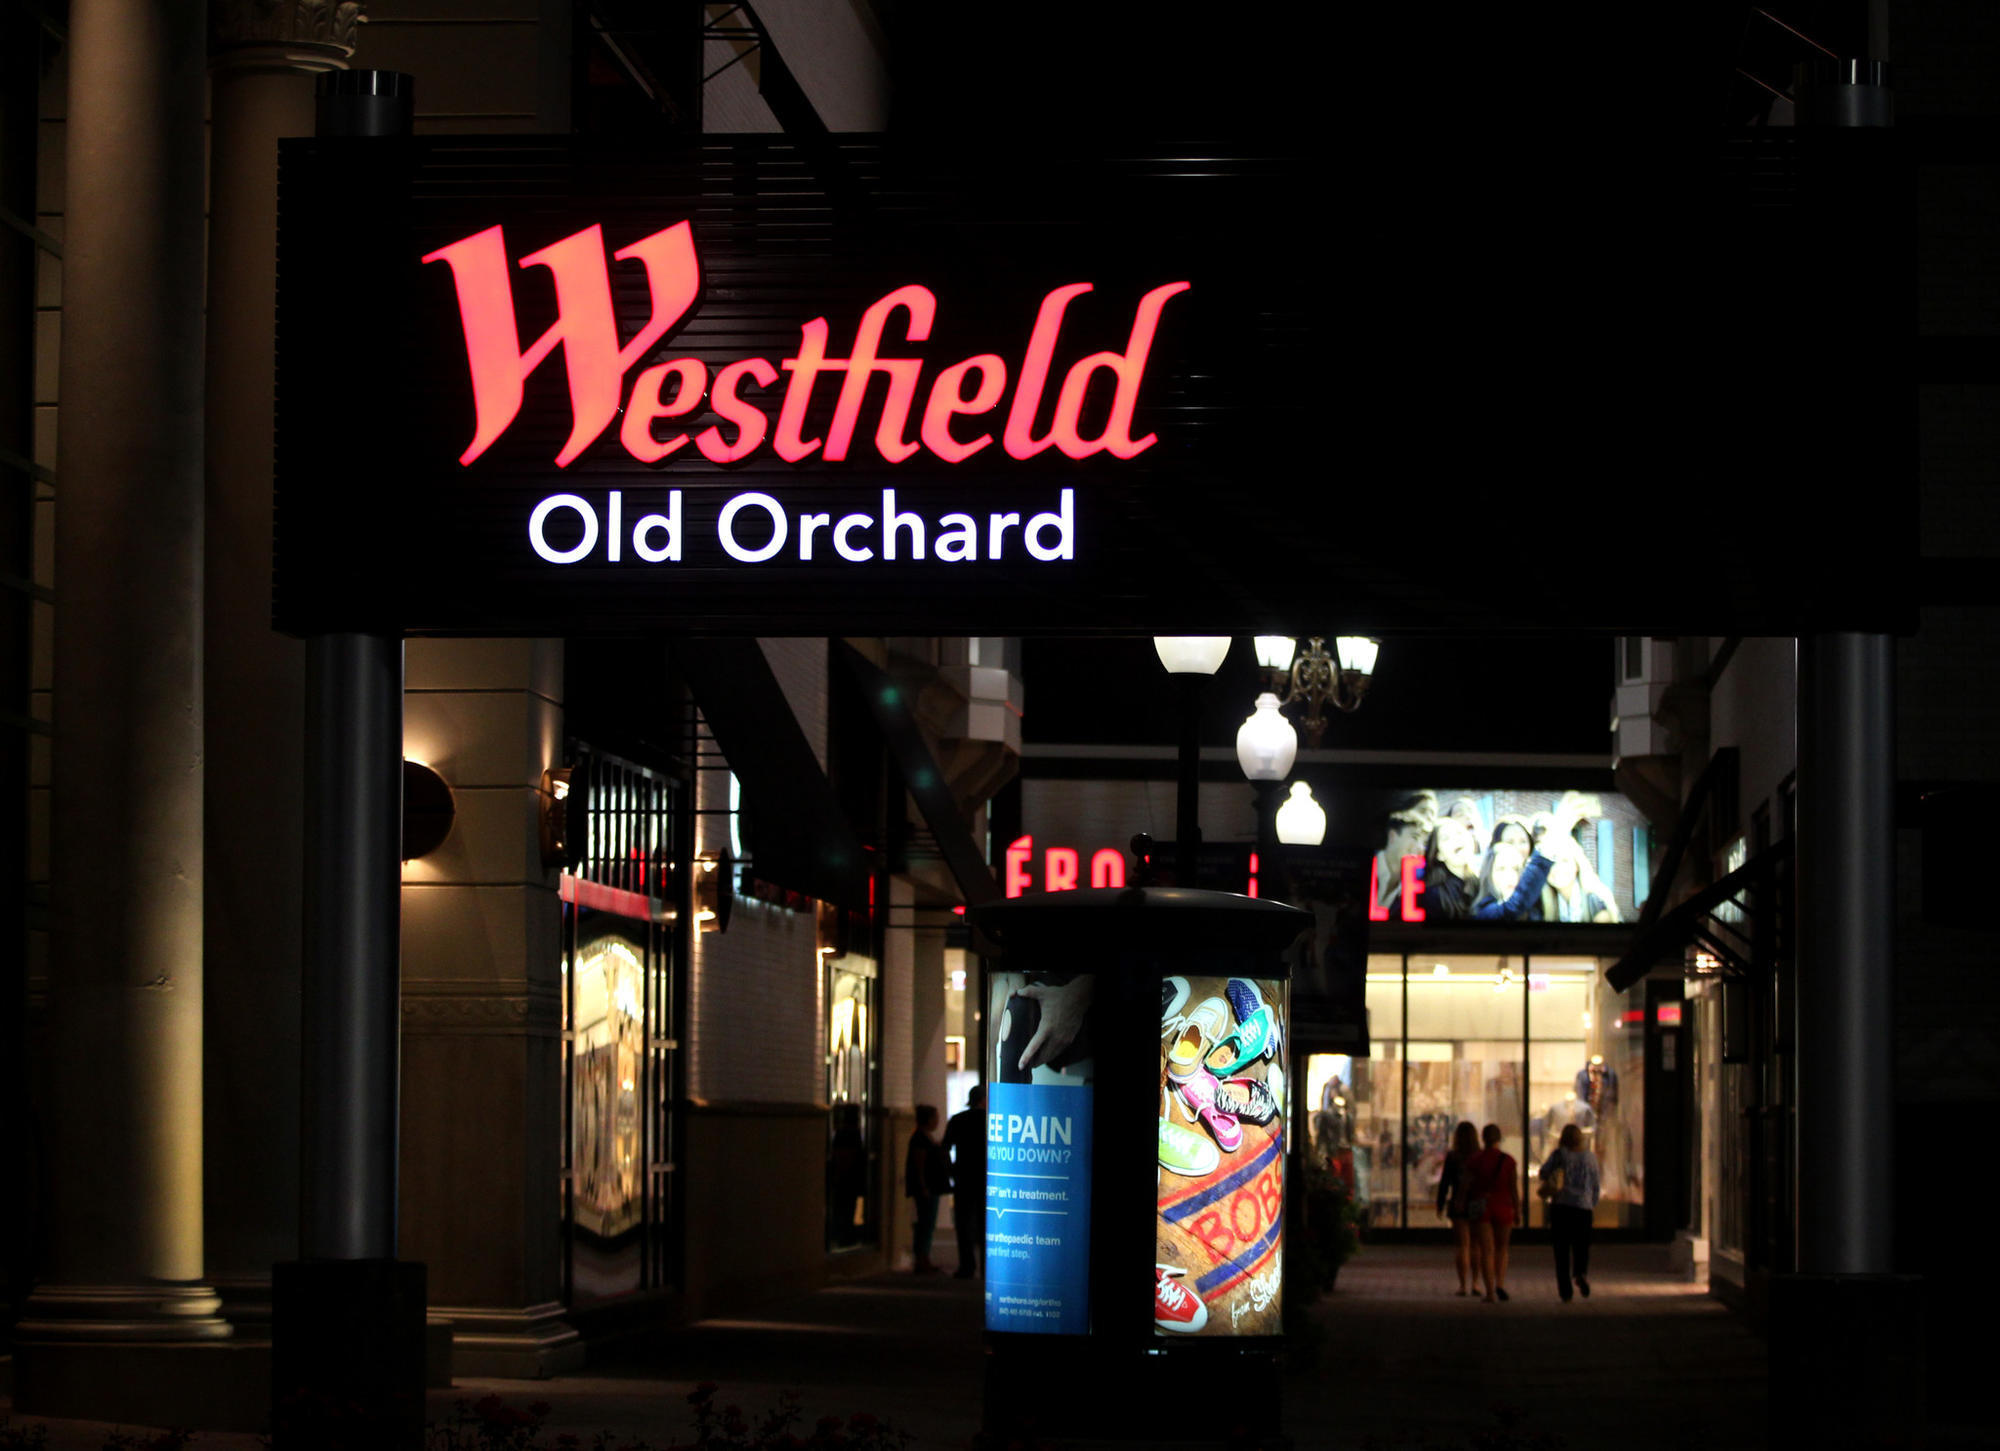 Old Orchard mall owner Westfield sold in 15.7 billion deal